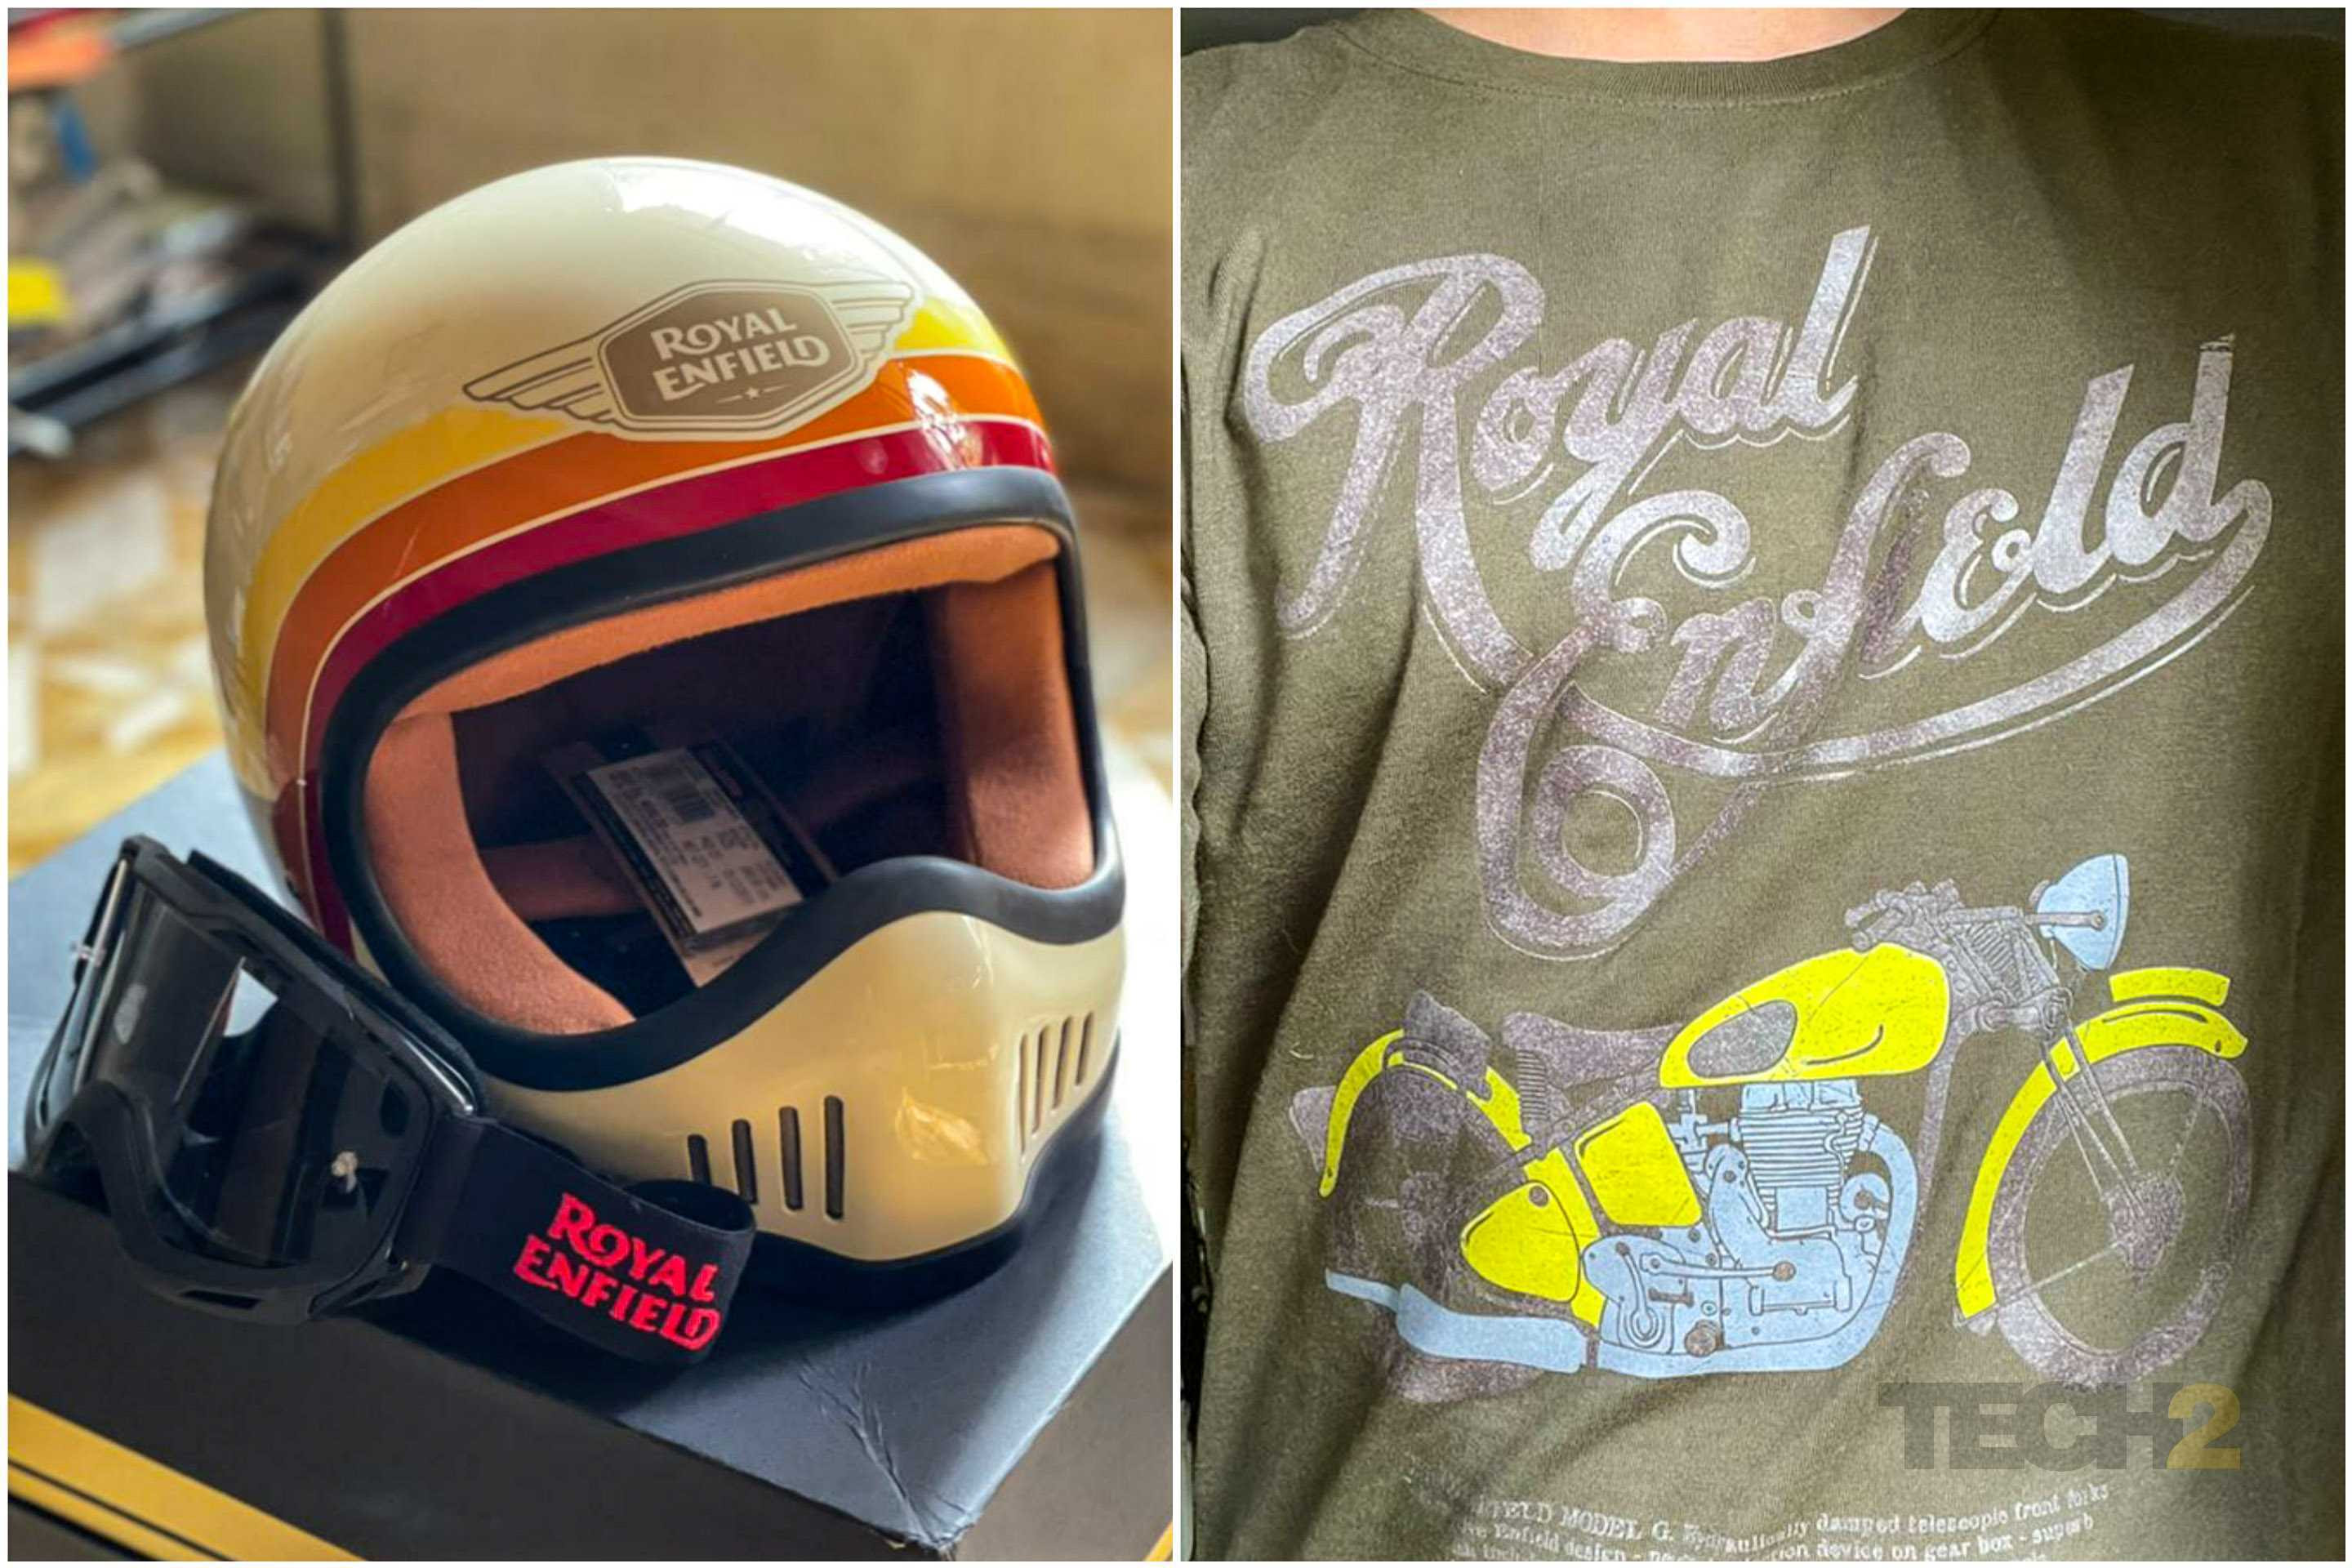 Royal Enfield merchandise. Image: Tech2/ Amaan Ahmed